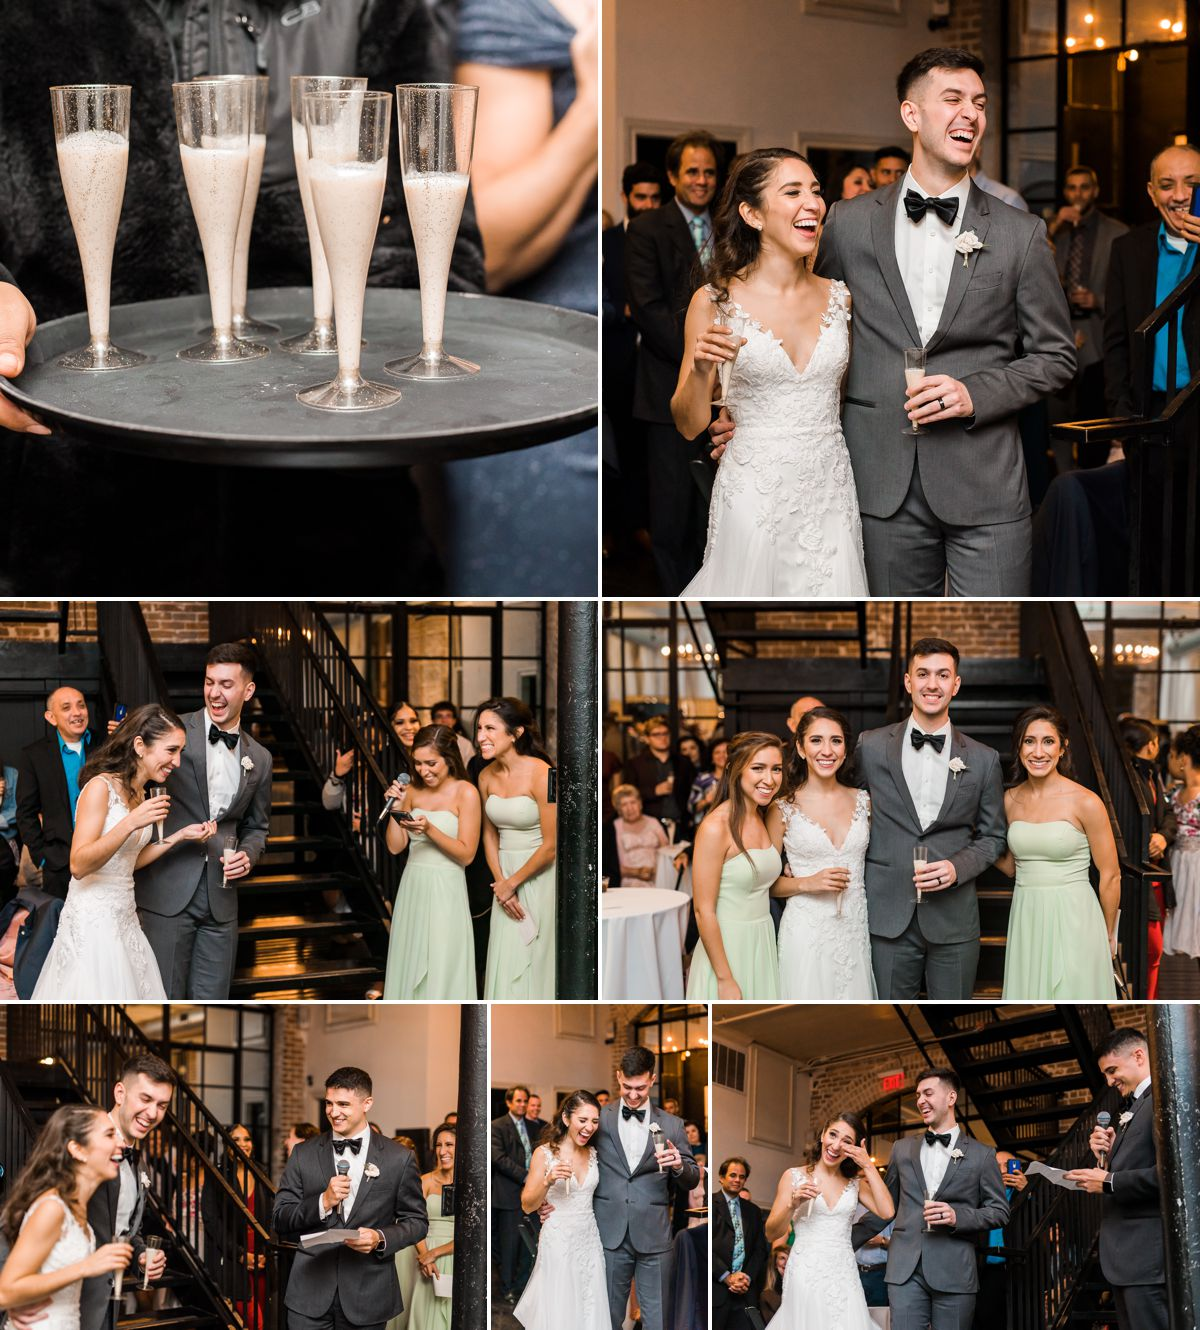 Station 3 Wedding Reception - Wedding Toasts - Houston Wedding Photographers